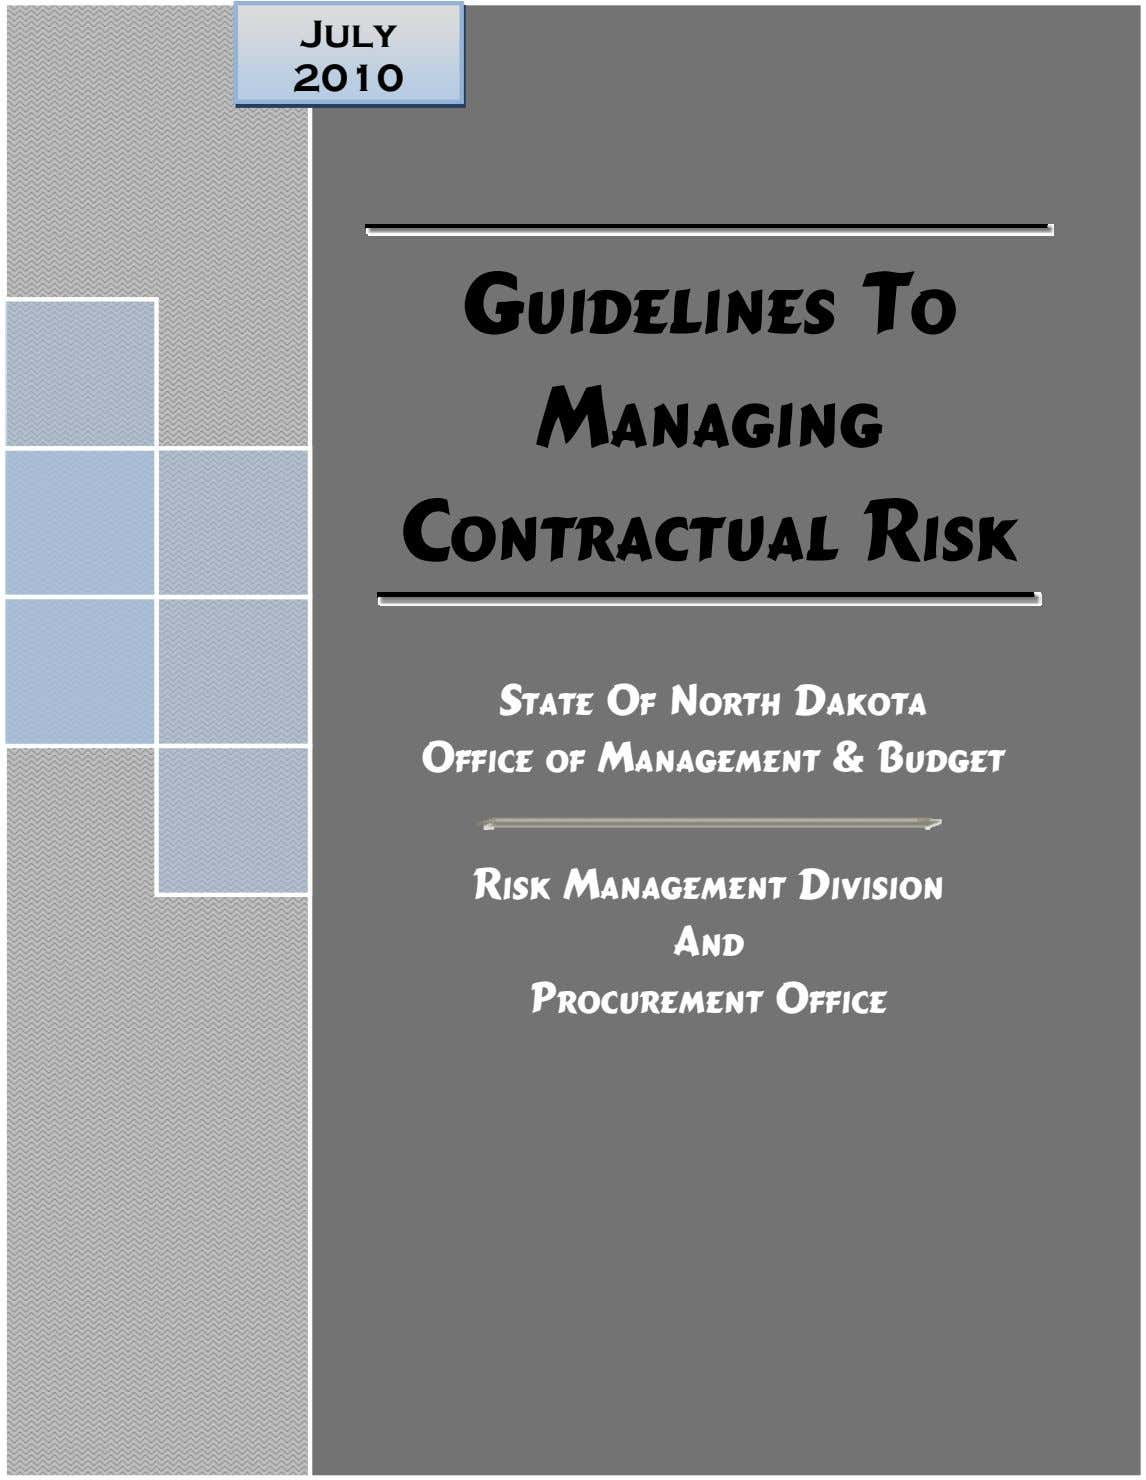 July 2010 Guidelines To Managing Contractual Risk State Of North Dakota Office of Management &